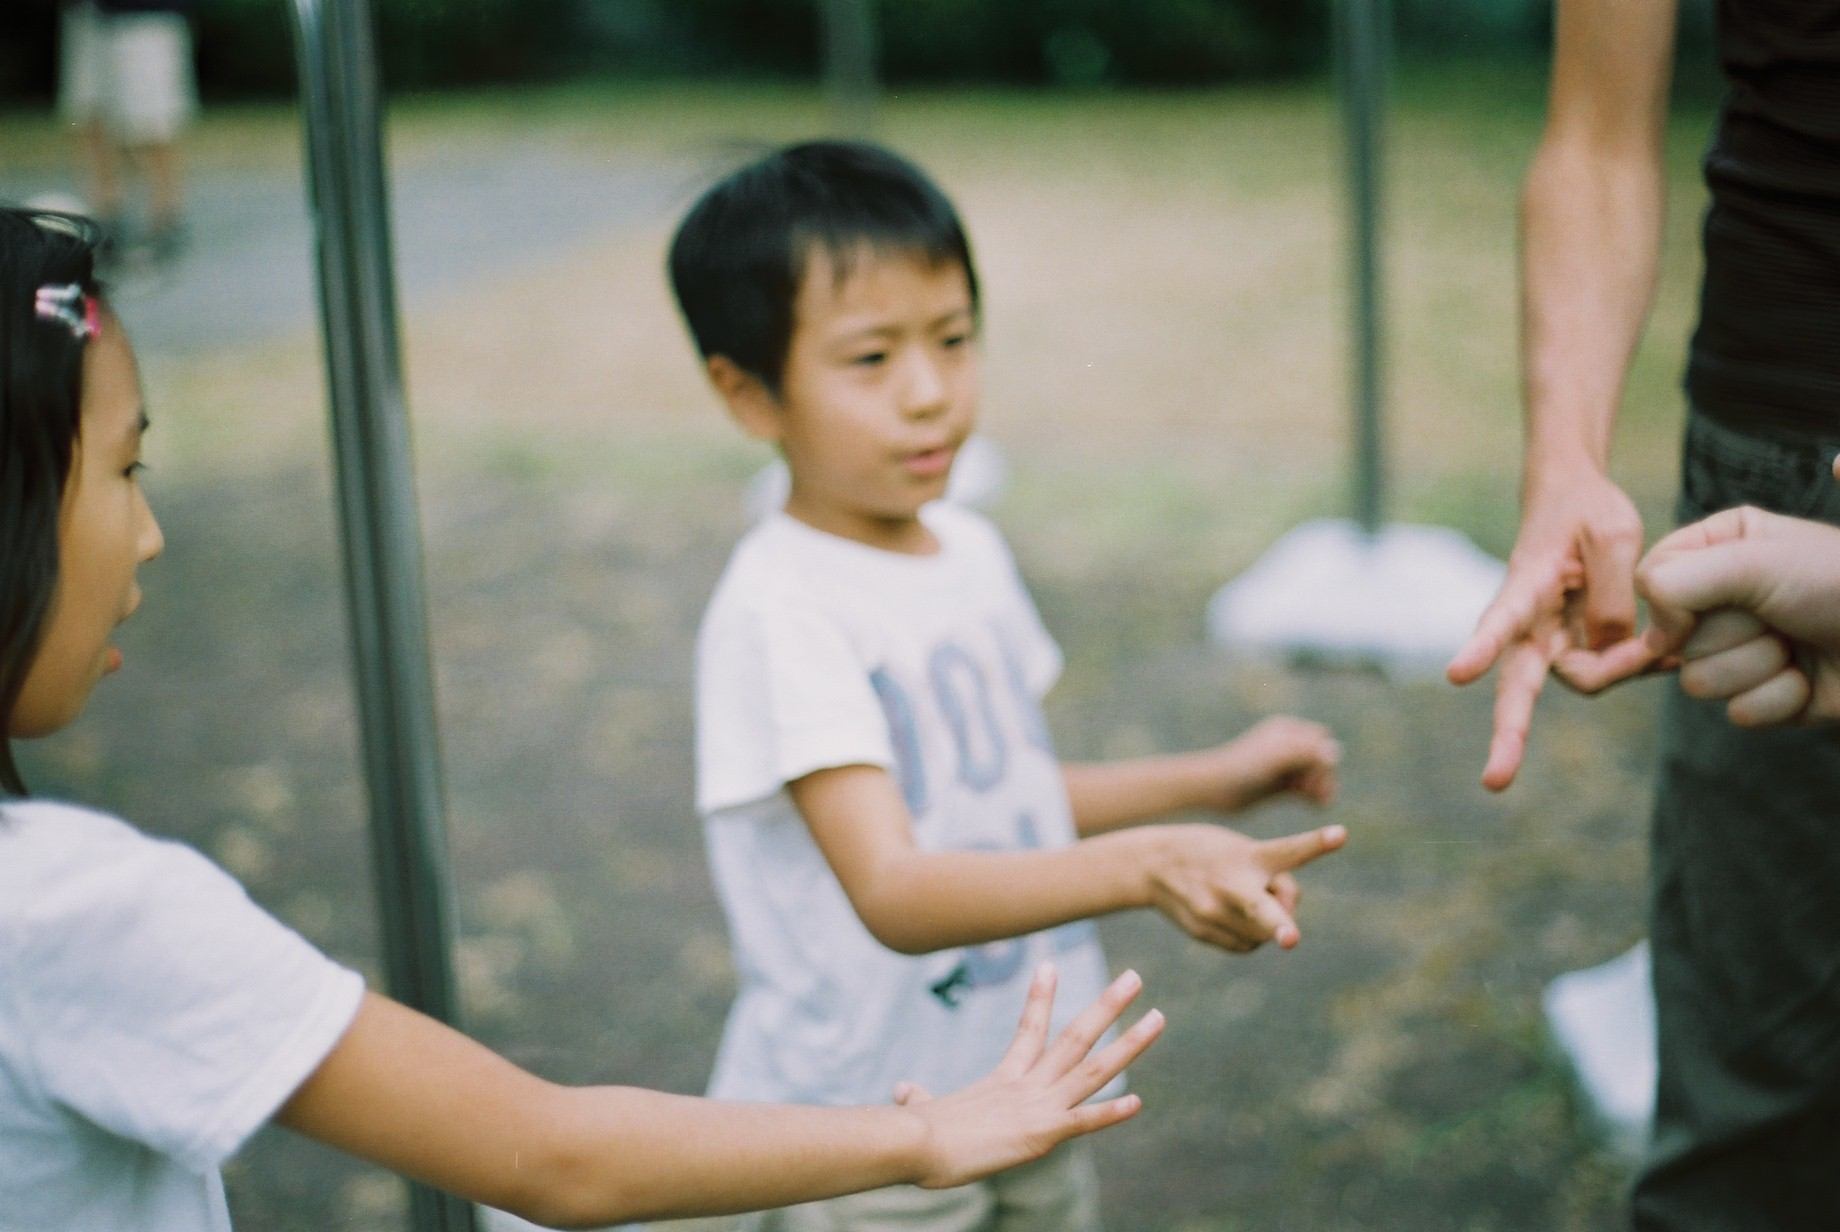 Four people, two children and two adults, play janken against one another outdoors. The girl chose paper, and the boy scissors, while the two adults (faces not shown) chose scissors and rock, resulting in a draw.